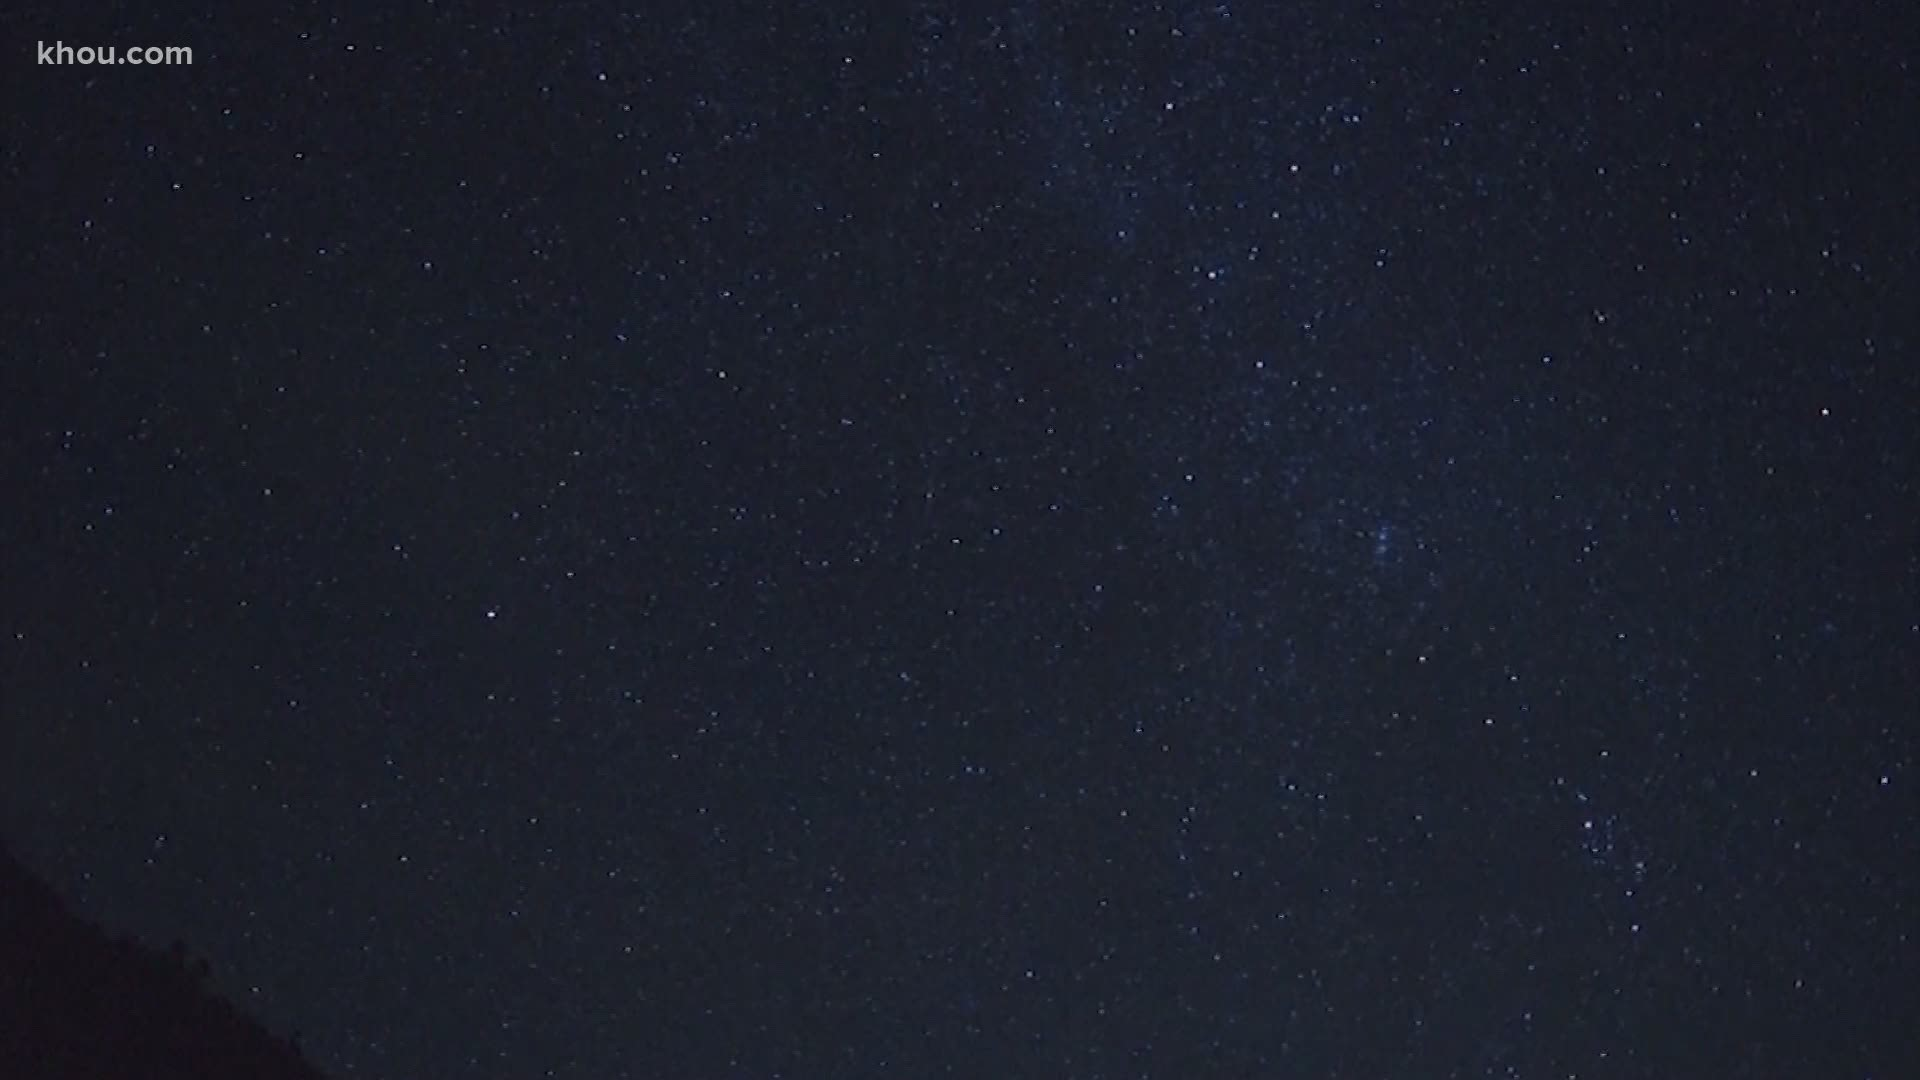 Perseid Meteor Shower Where To Watch In The Houston Area Khou Com